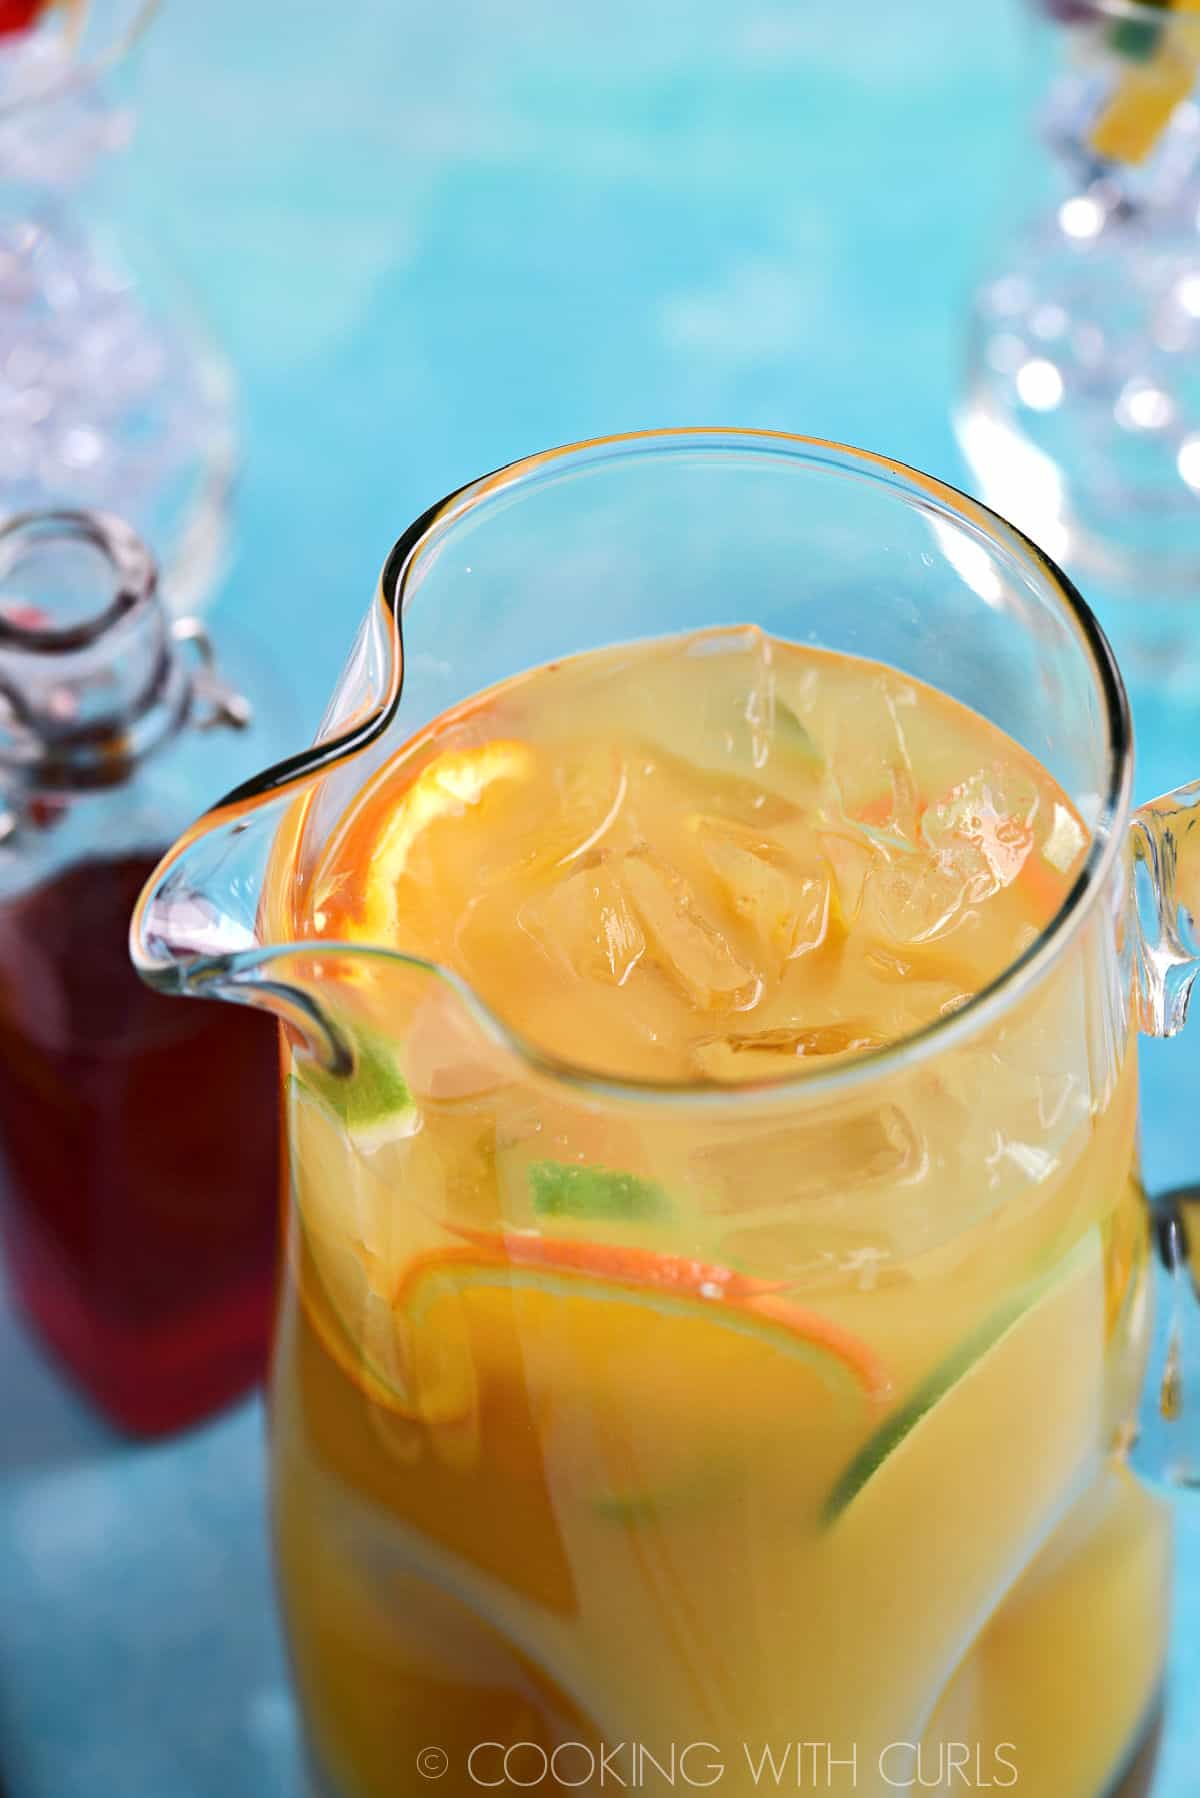 Looking down into a pitcher of Jamaican Rum Punch with ice cubes and fresh fruit and a bottle of strawberry syrup in the background.